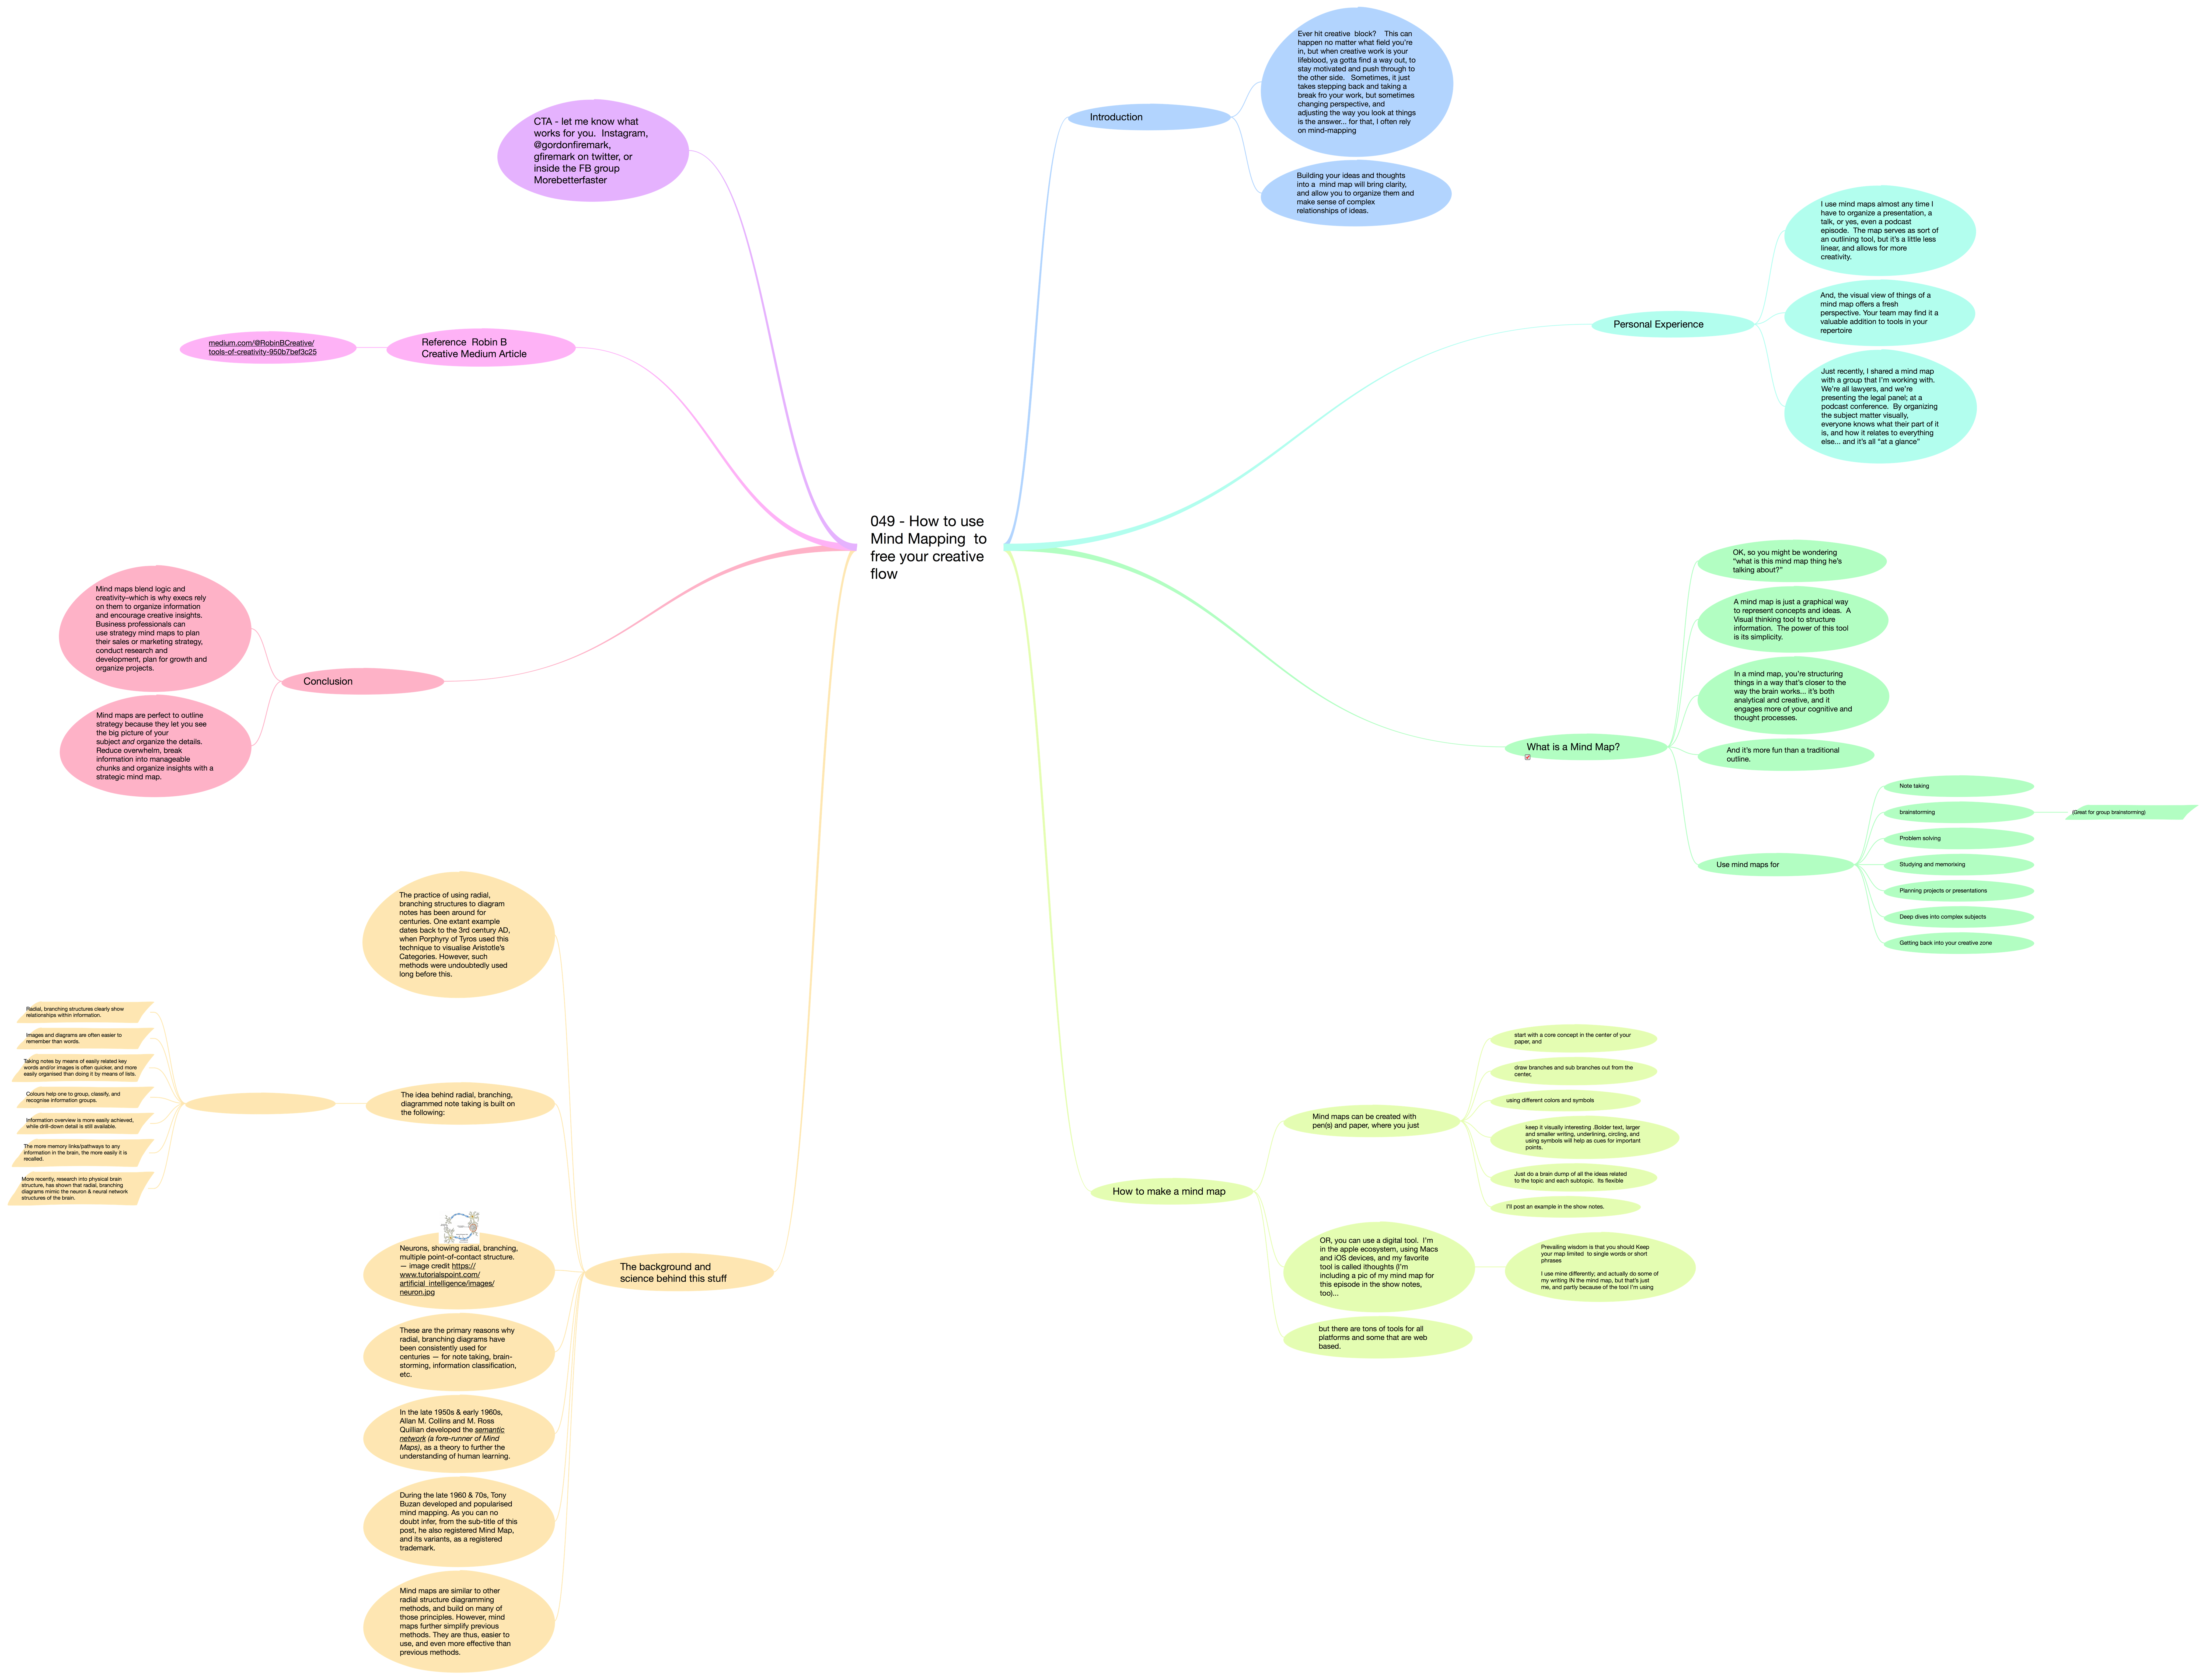 Mind Map for this episode, made using iThoughts